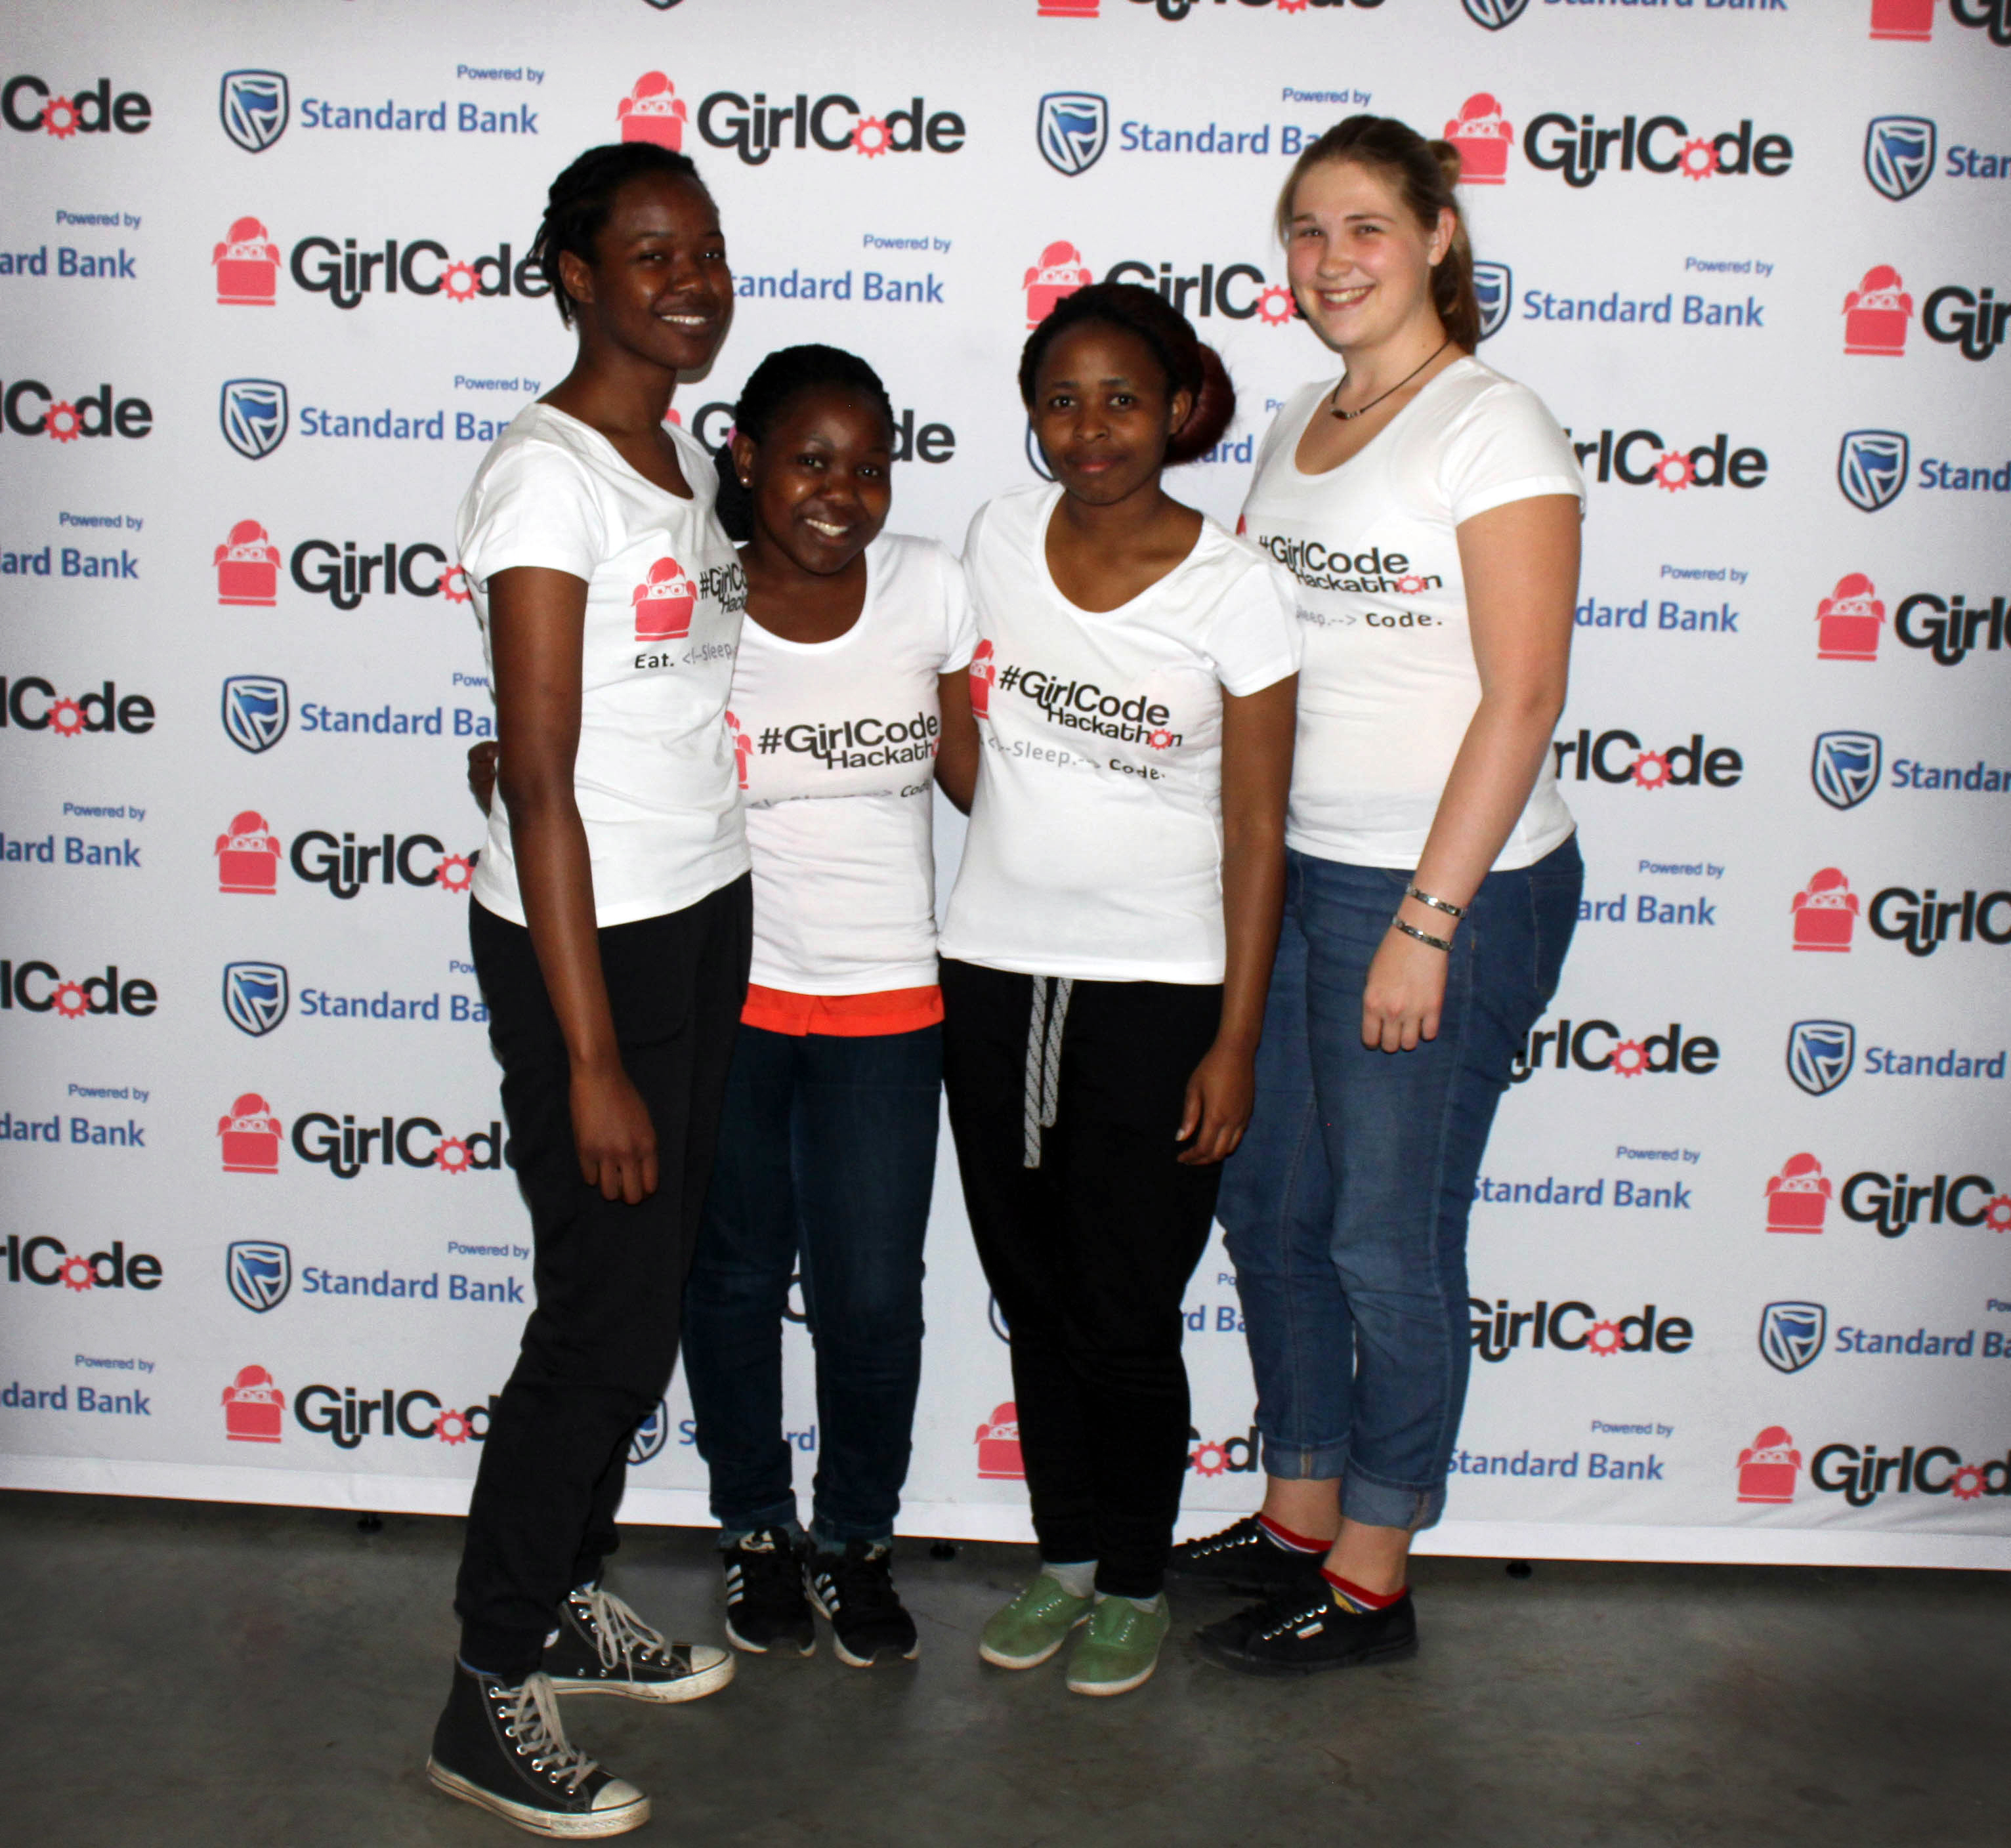 Witsies show what it means to code like a girl